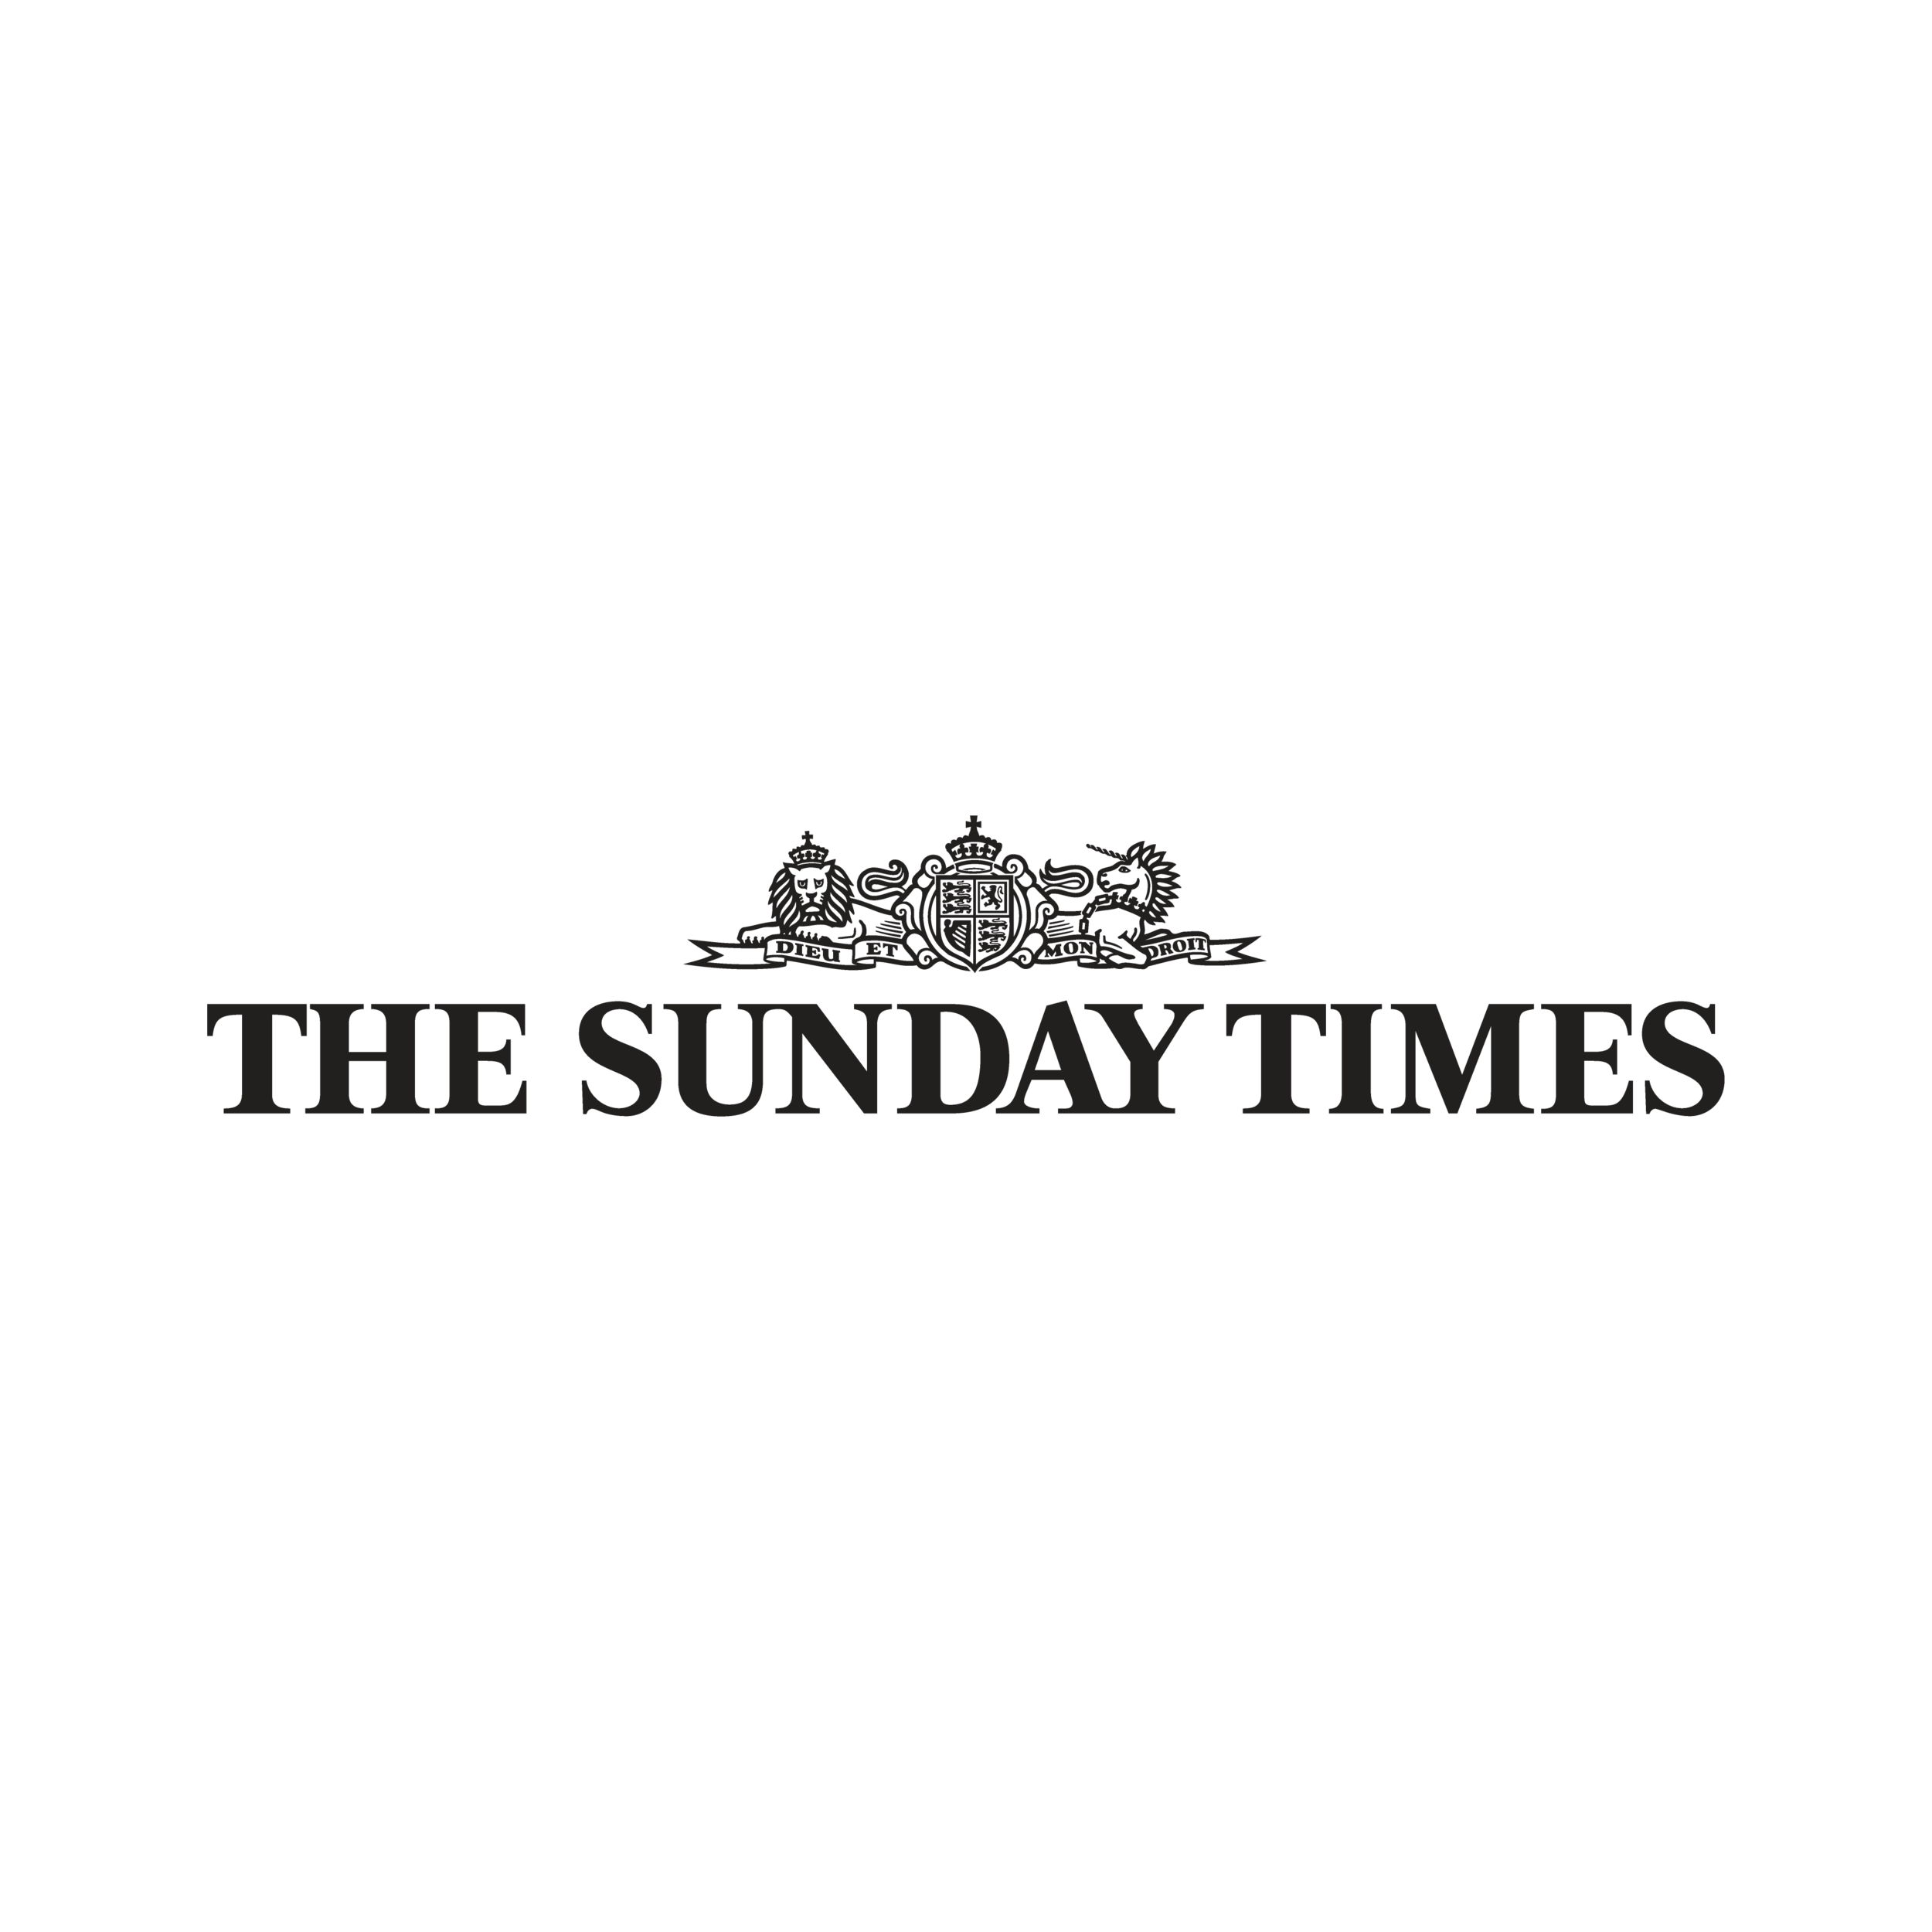 The Sunday Times.png